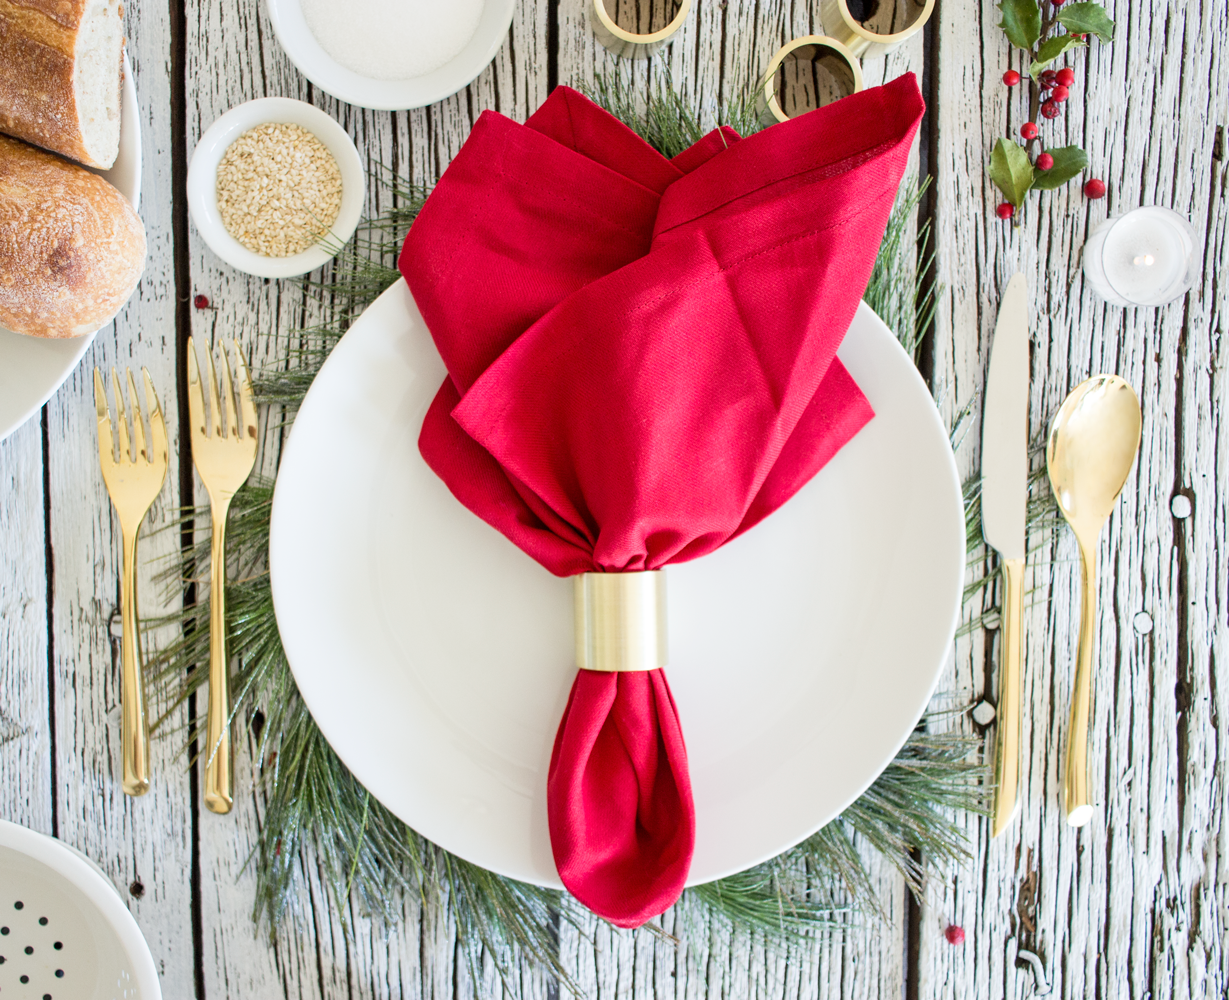 Brass Napkin Rings by Smokestack Studios. These gold colored rings are perfect for Secret Santa, a culinary Christmas gift for a husband or wife, or a housewarming gift for a newlywed couple!